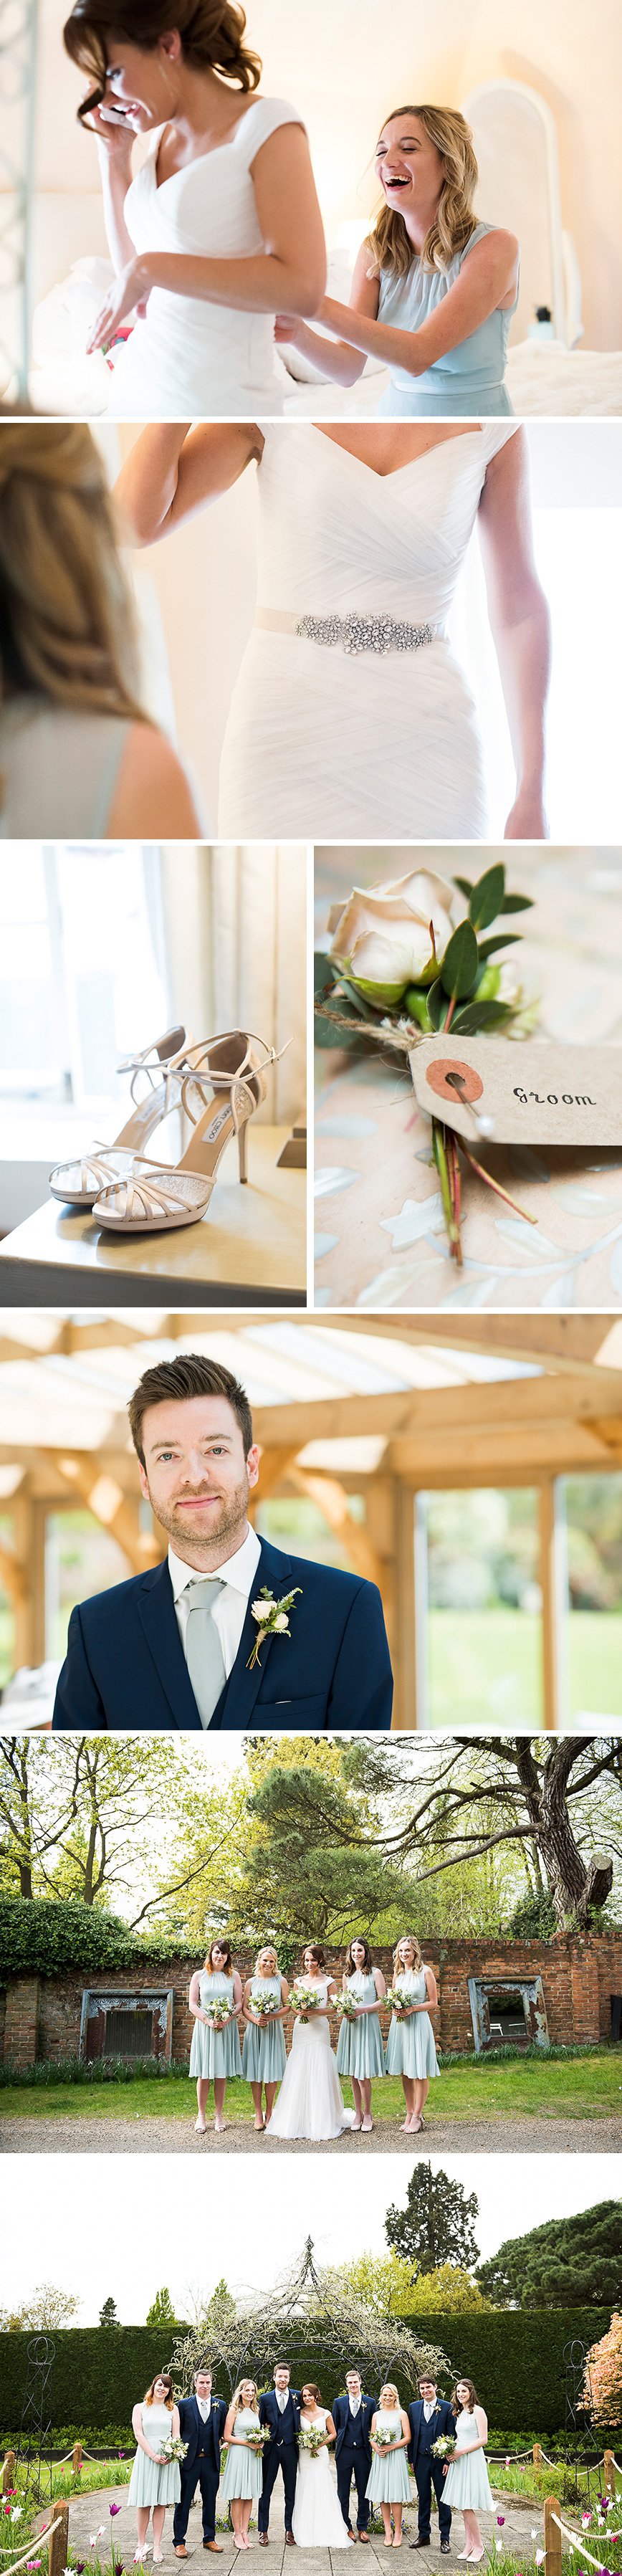 Real Wedding - Amanda and Steve's Exquisite Easter Wedding At Gaynes Park | CHWV